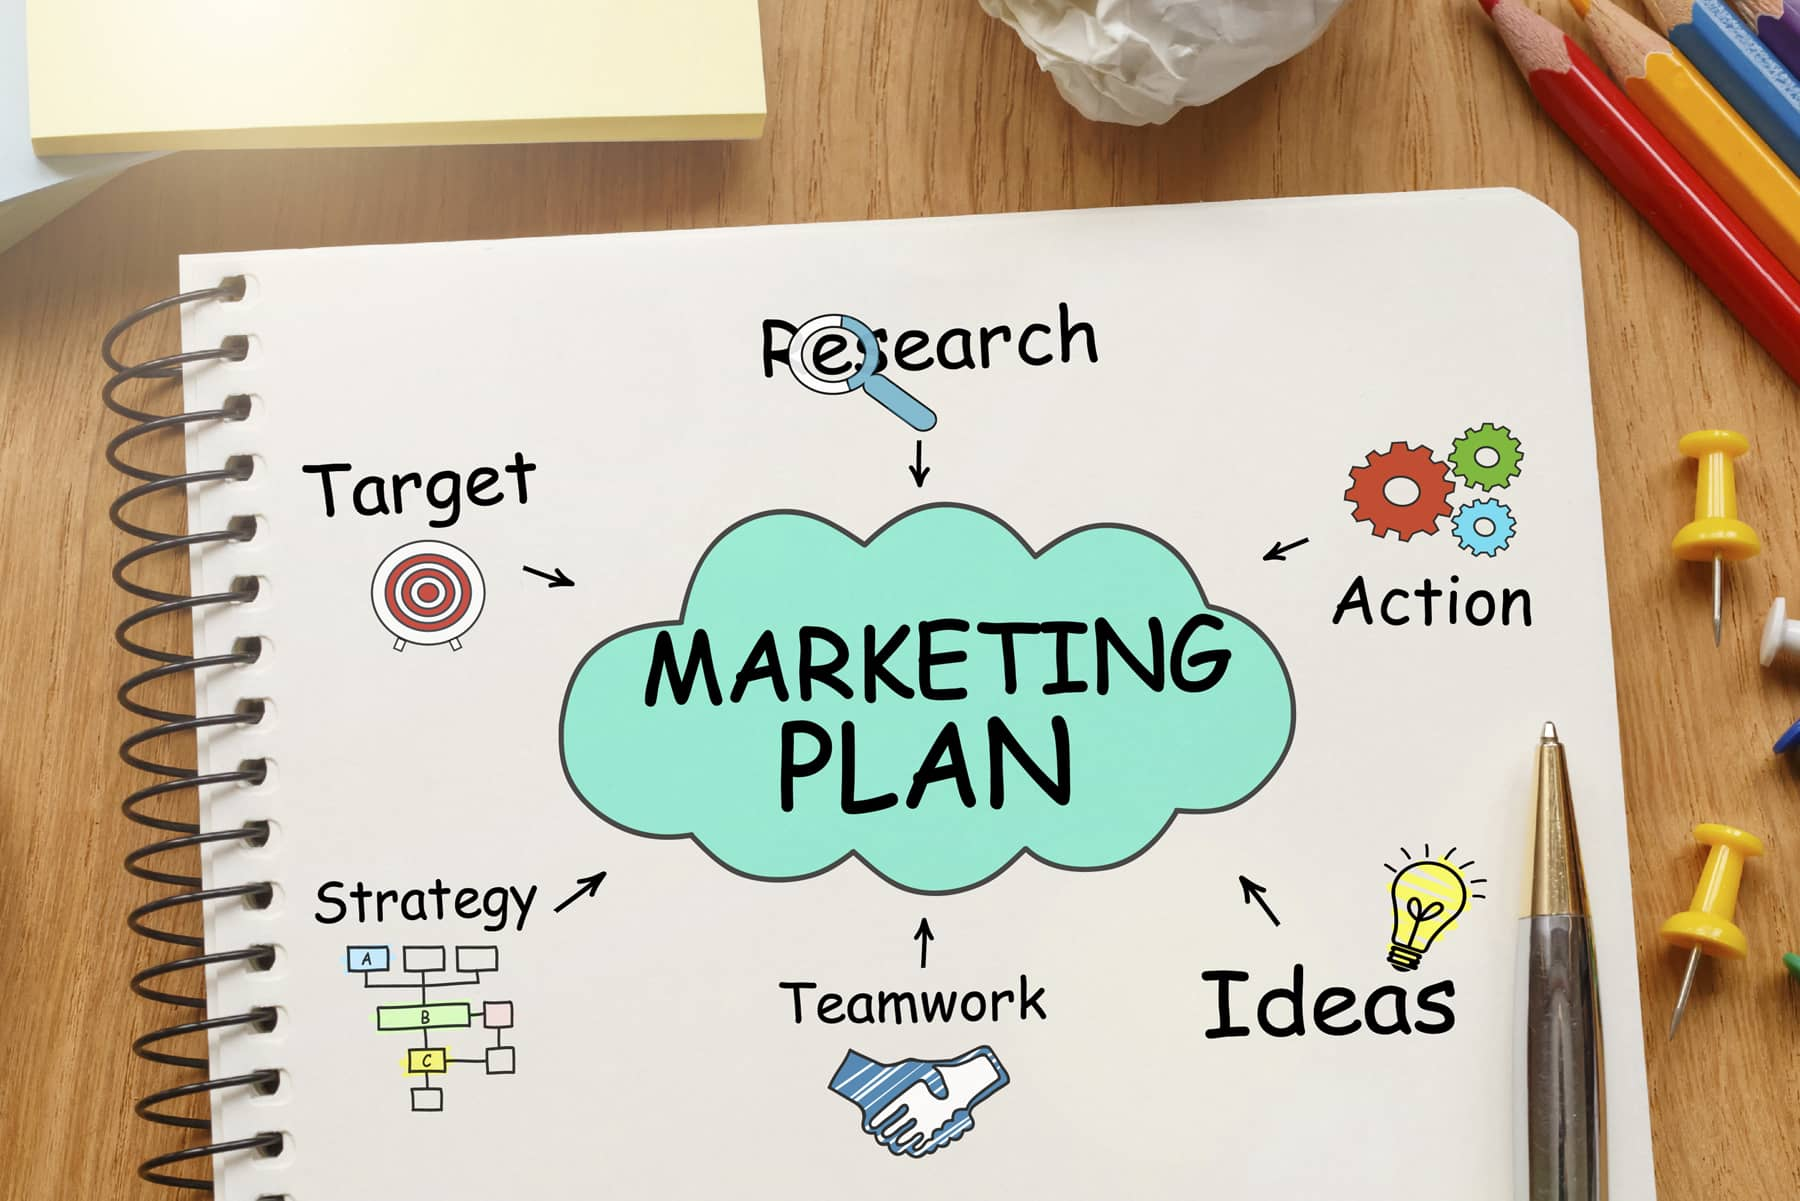 A notebook filled with different icons shows what it takes to build a marketing plan.